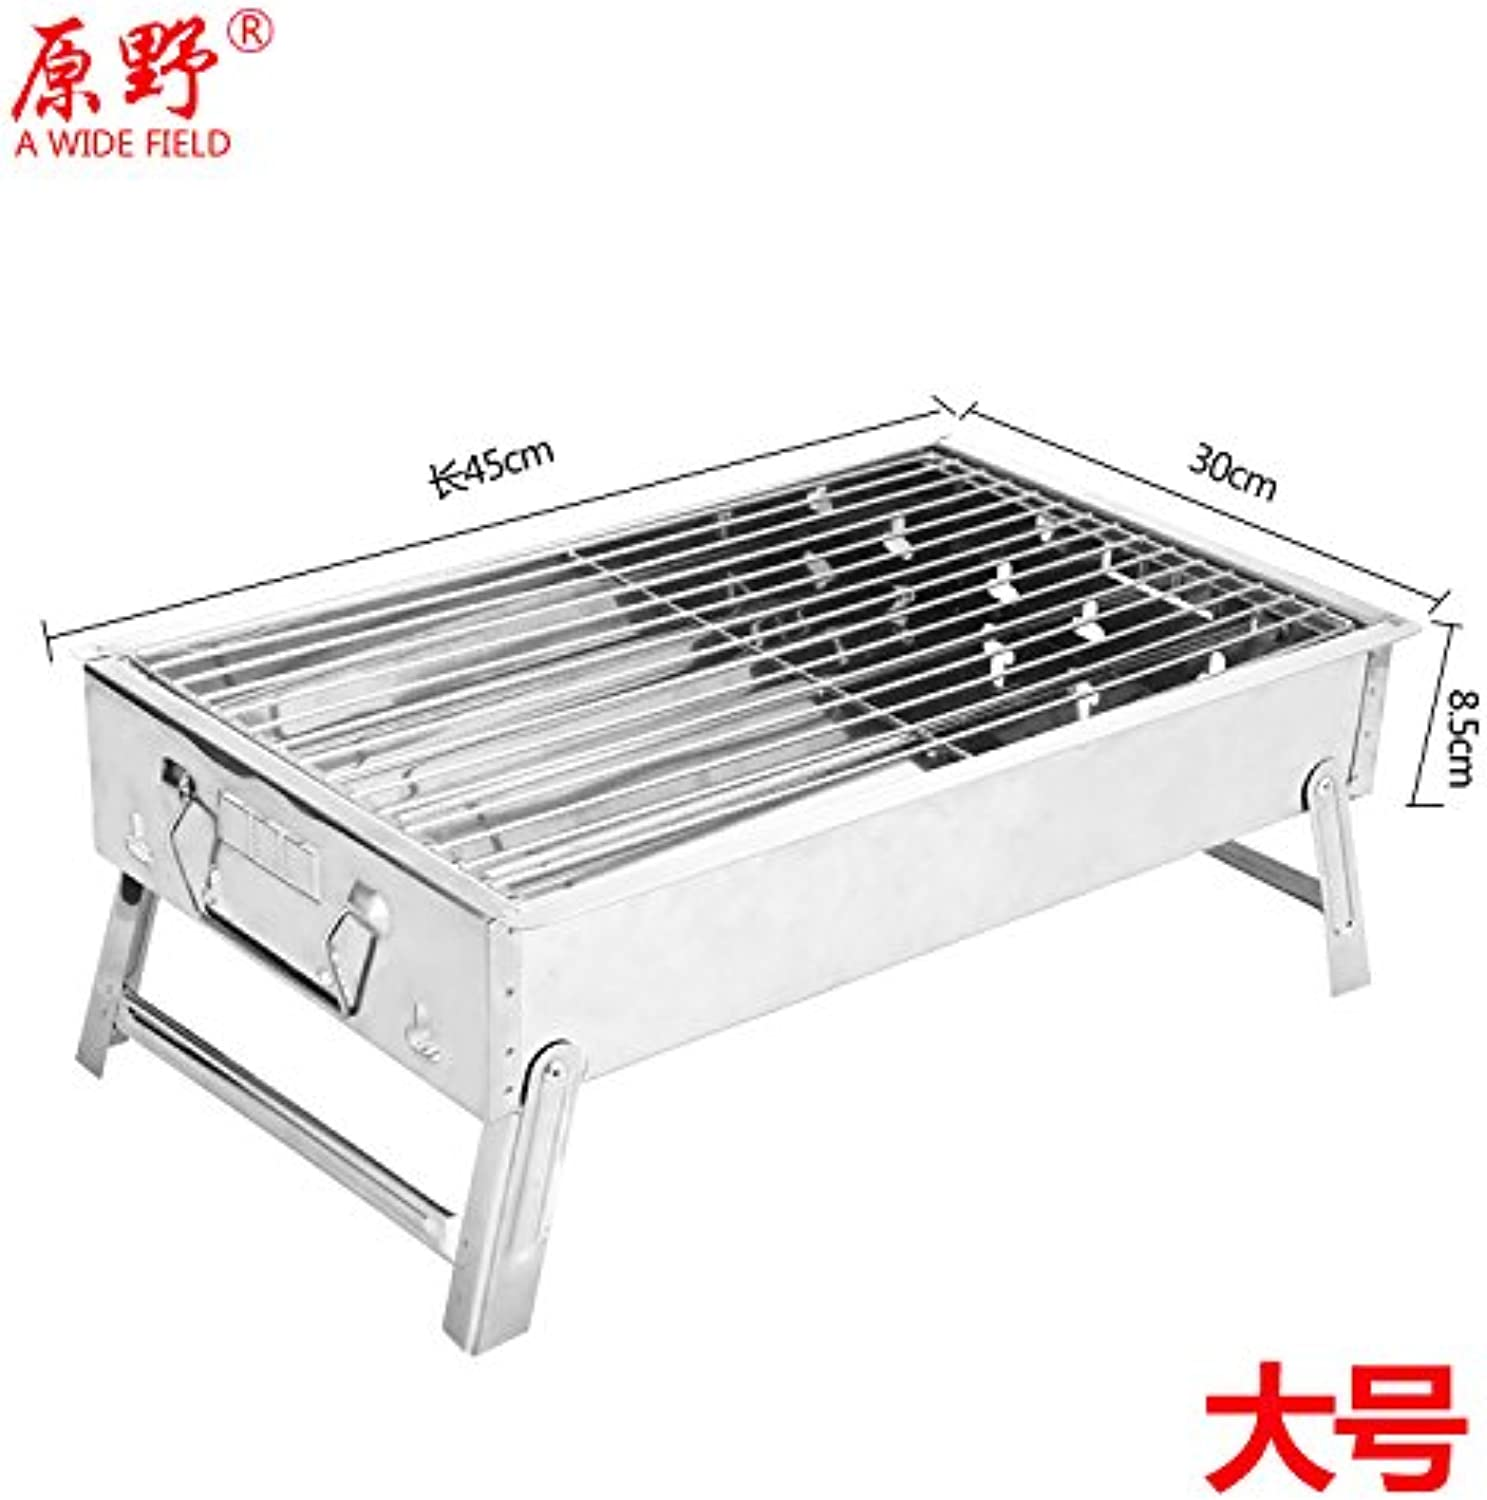 Grill outdoor home charcoal stoves wild fold portable 3-5 full grilled meat chassis , large oven + Bar Stainless steel net